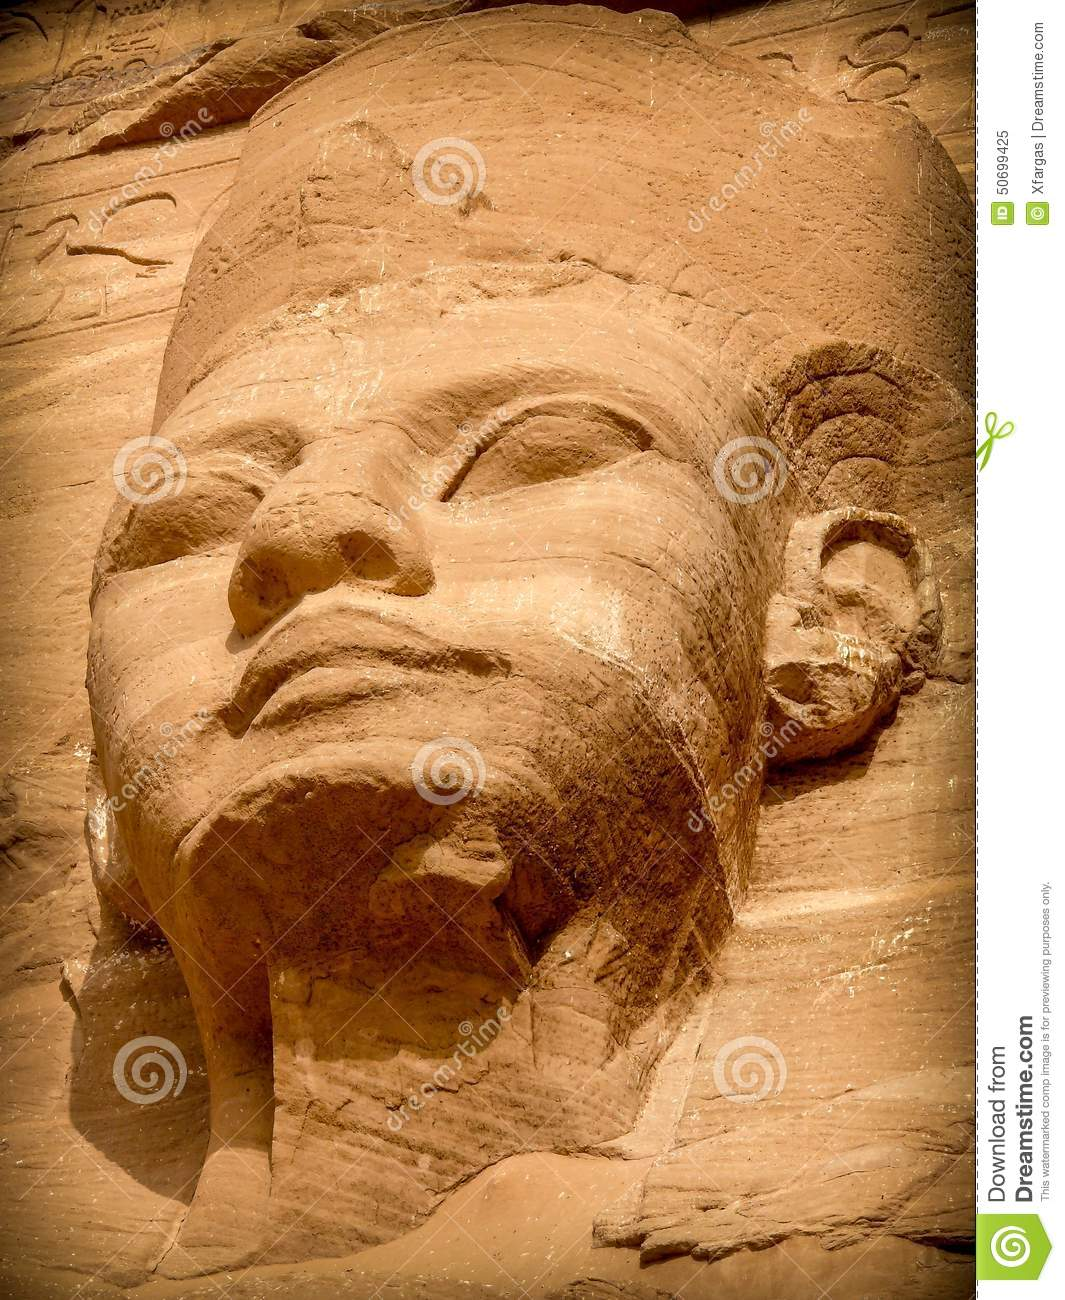 Ramses ii facial structure tube